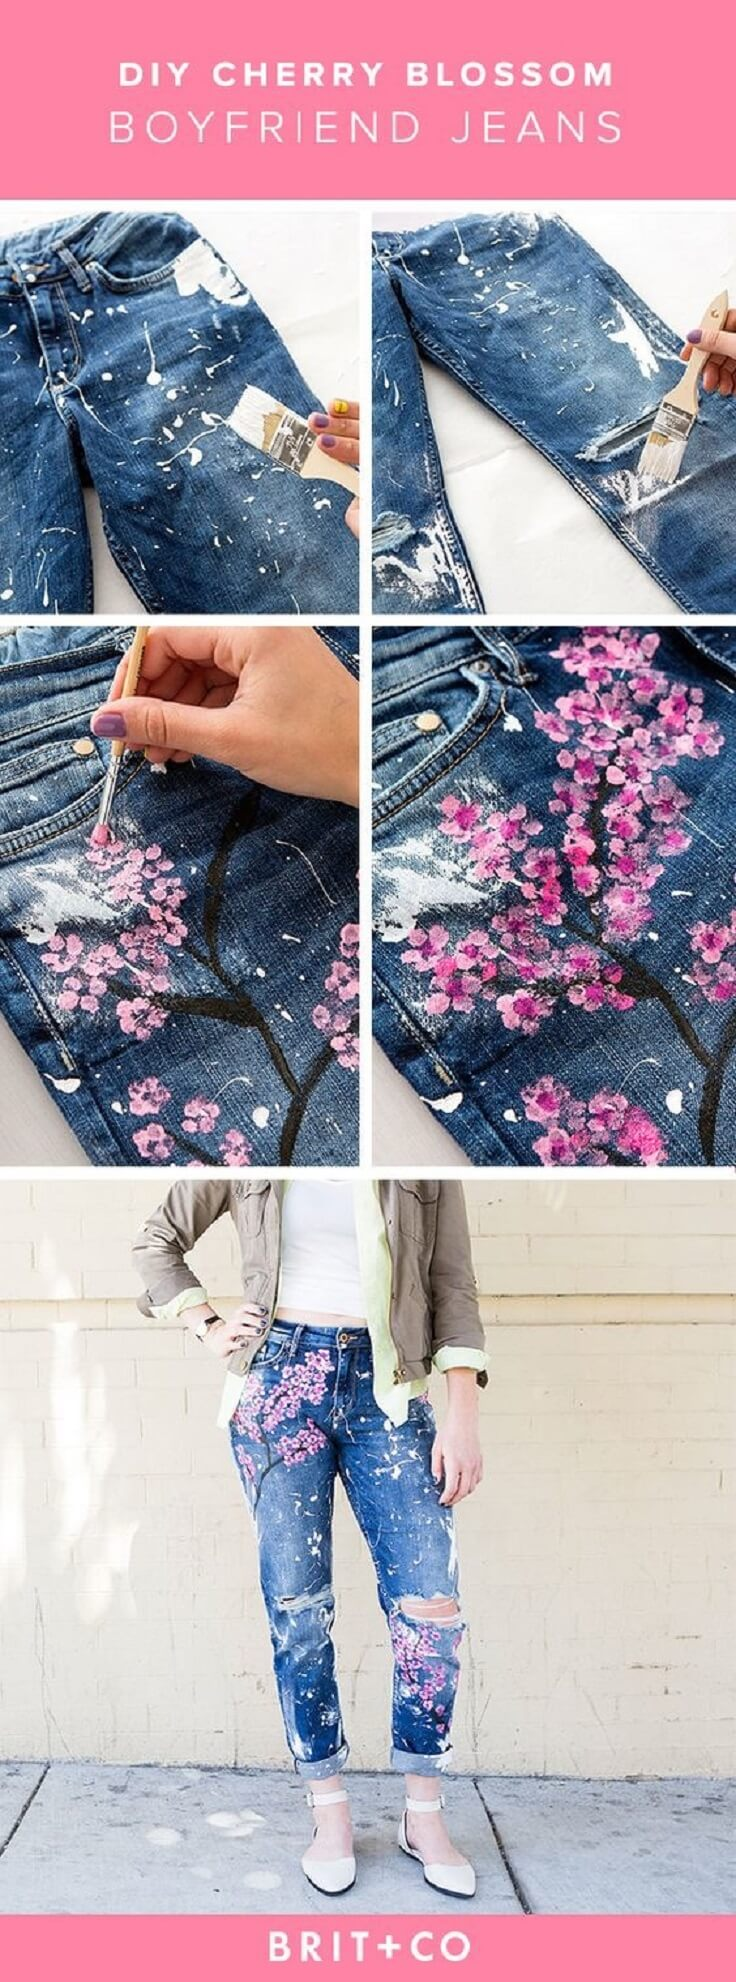 DIY-Blake-LivelyтАЩs-500-Cherry-Blossom-Boyfriend-Jeans-k4craft